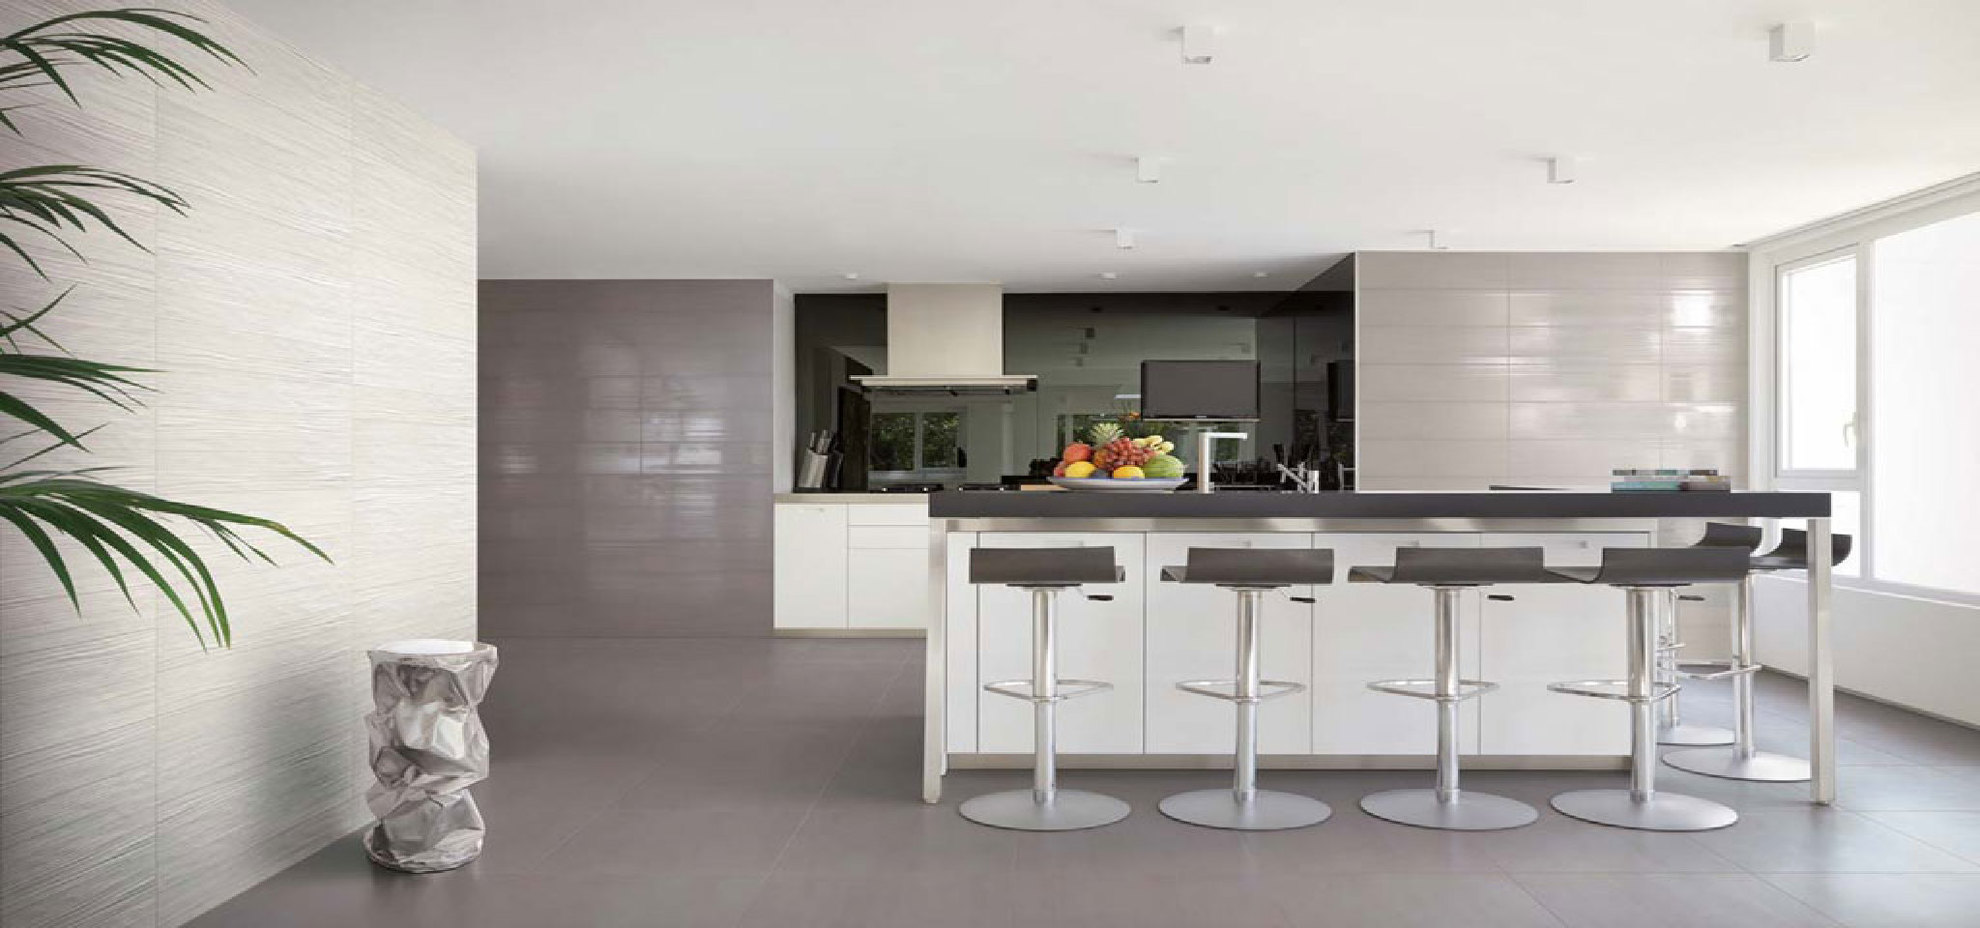 Gres porcelanico: superficie de la cocina ideal | Floornature